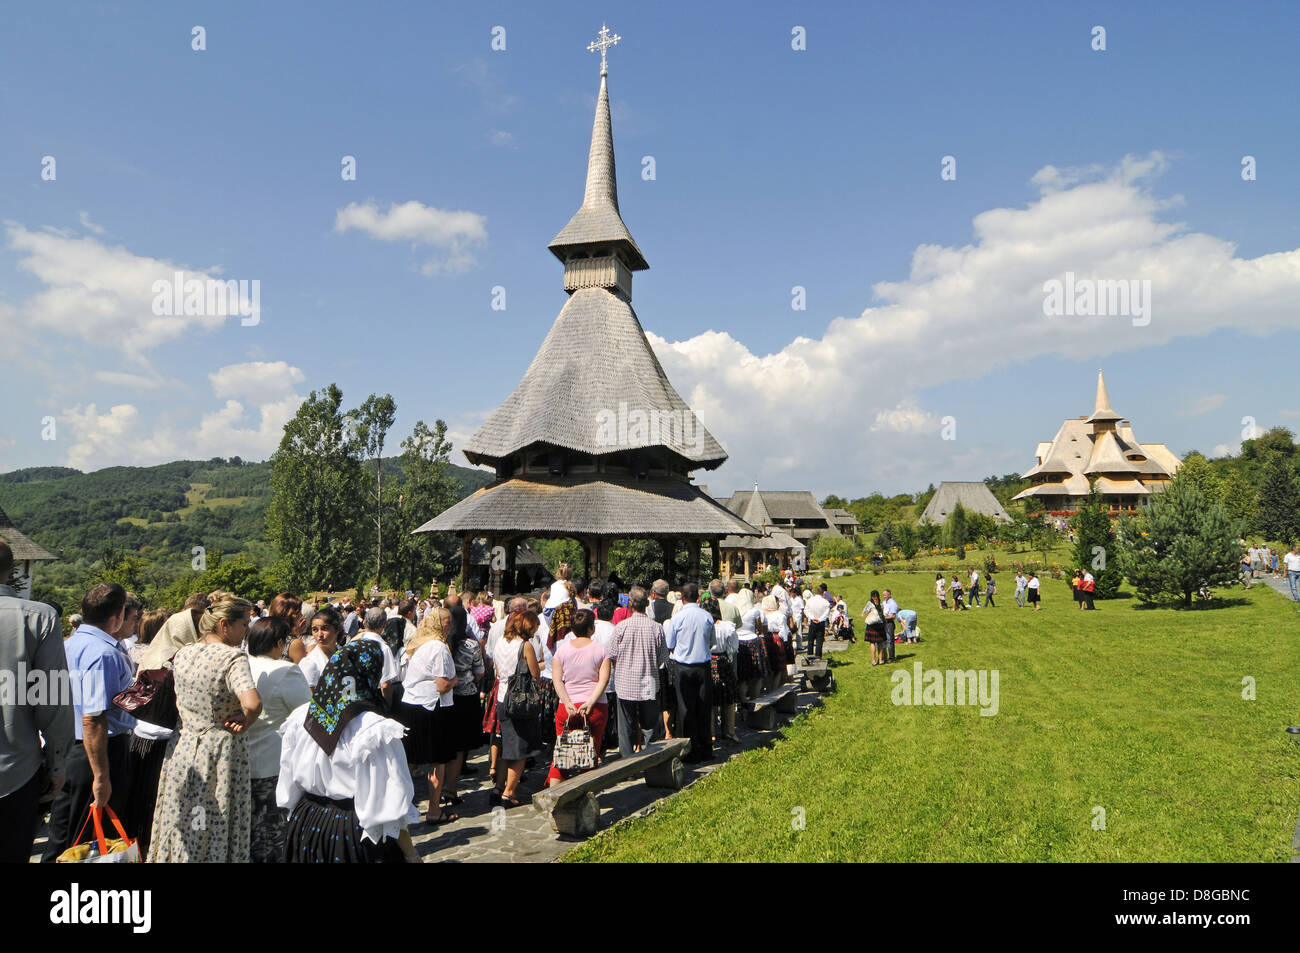 Wooden church - Stock Image